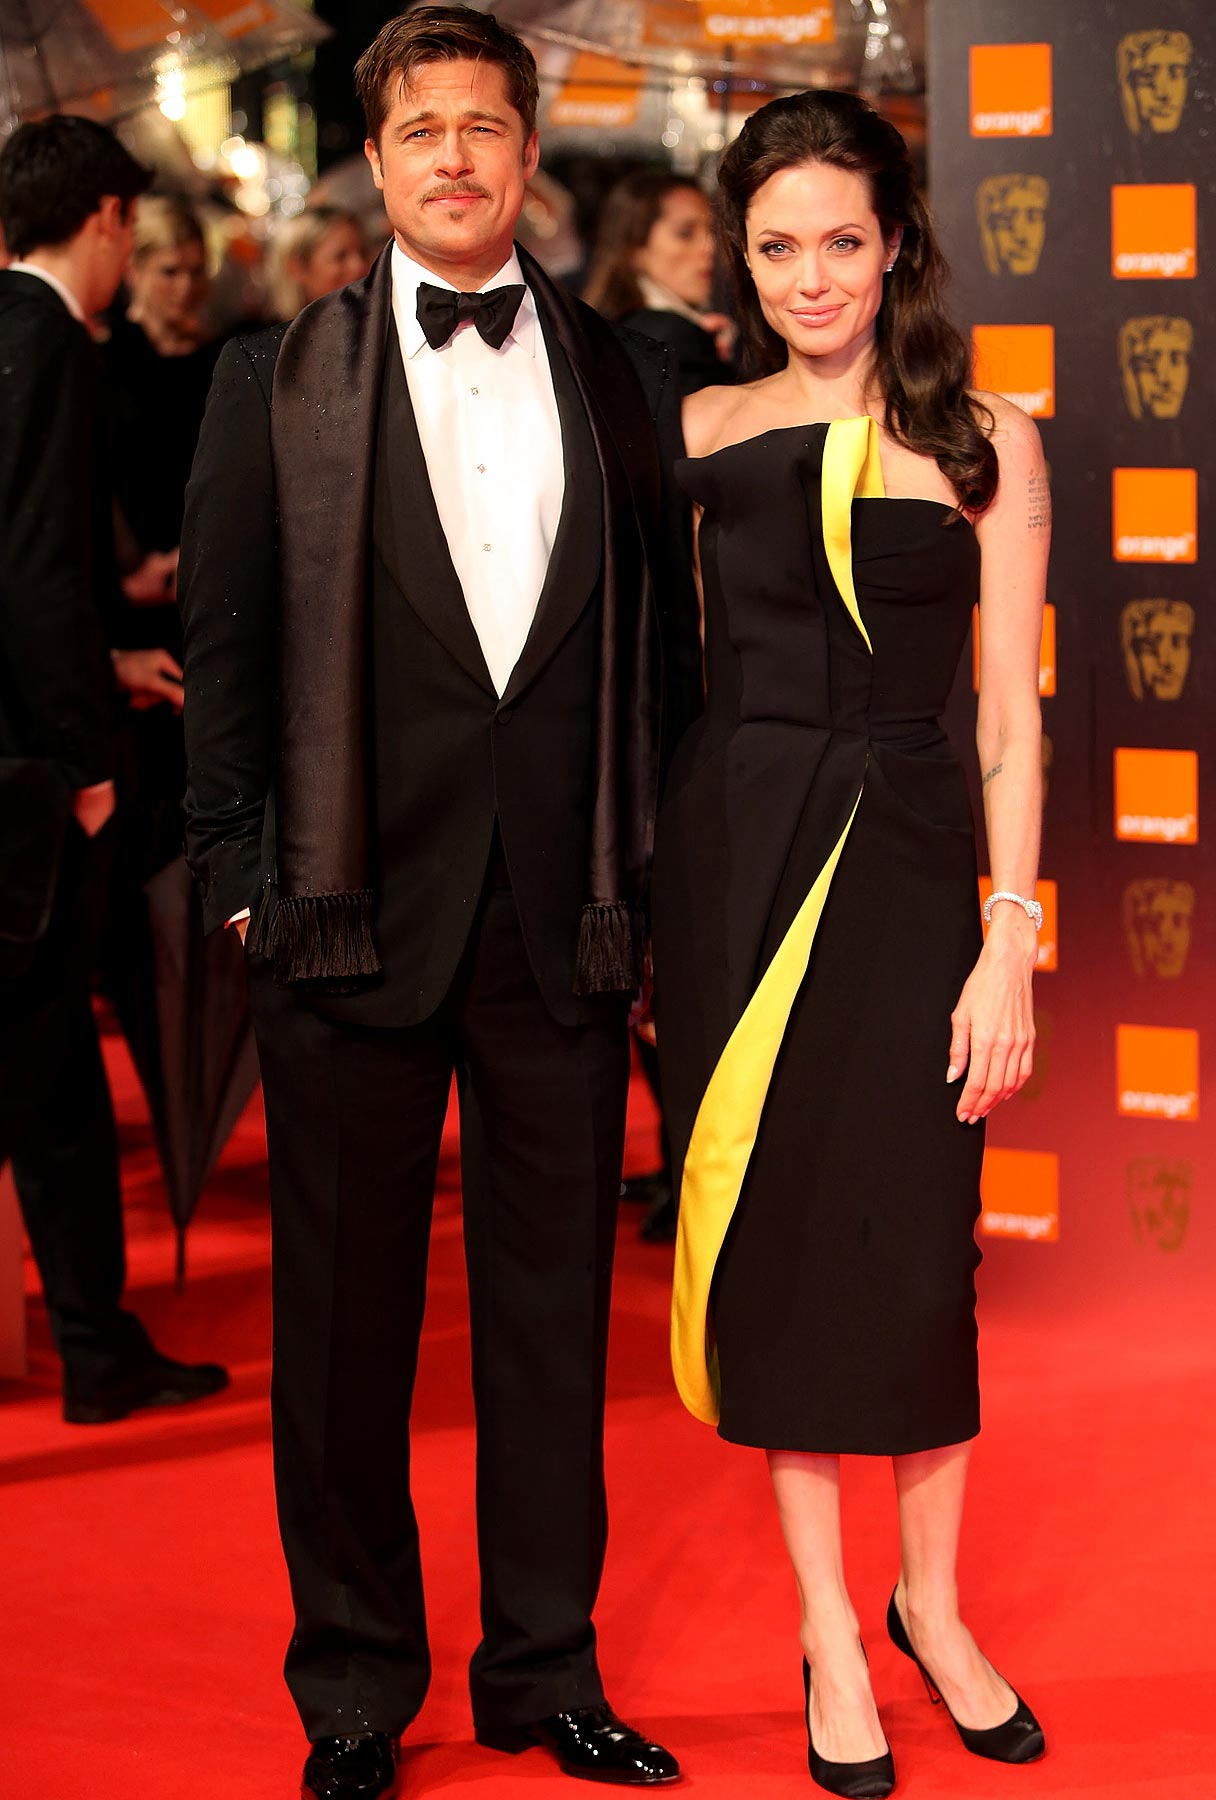 Meanwhile in England: Brangelina Hit BAFTAs